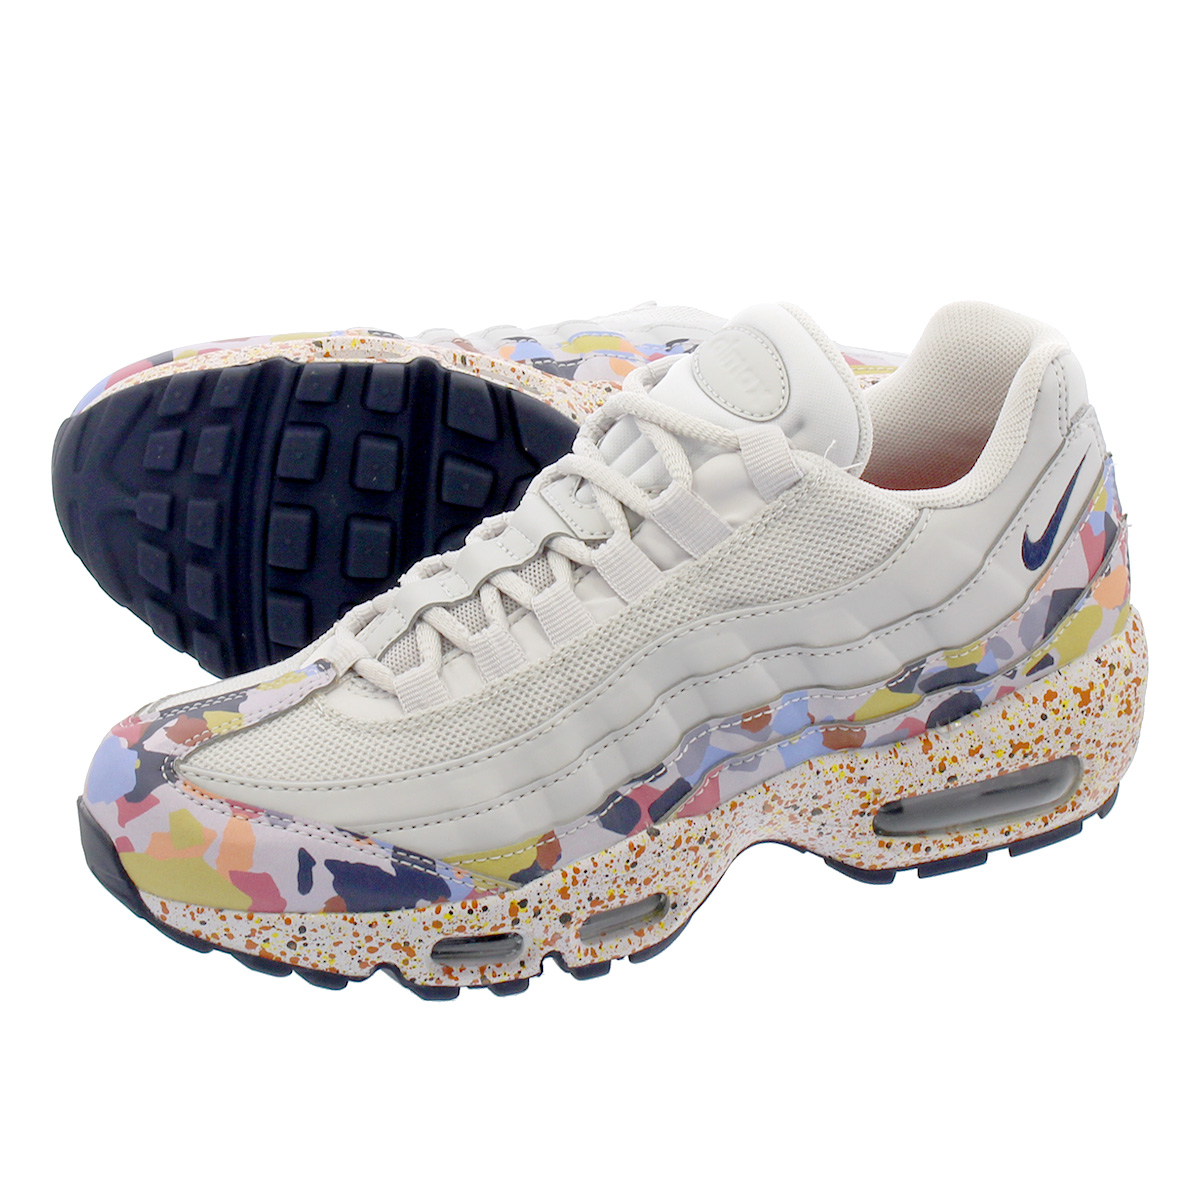 b7c080fecf3 NIKE WMNS AIR MAX 95 SE Nike women Air Max 95 premium SE VAST GREY MIDNIGHT  NAVY HABANERO RED 918